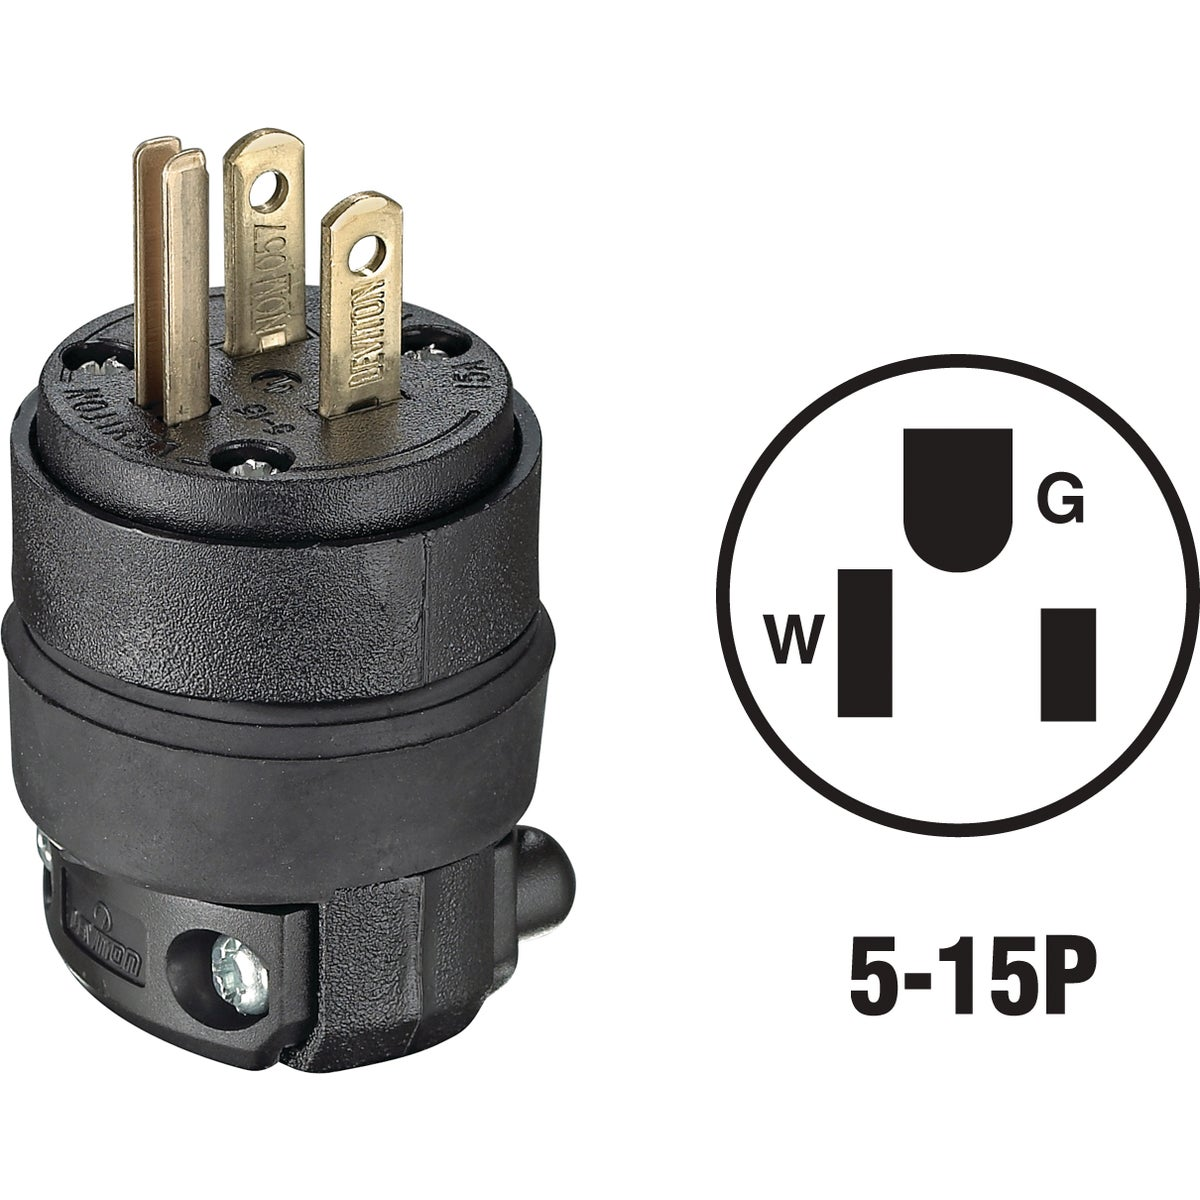 BLK CORD PLUG - 515PR by Leviton Mfg Co